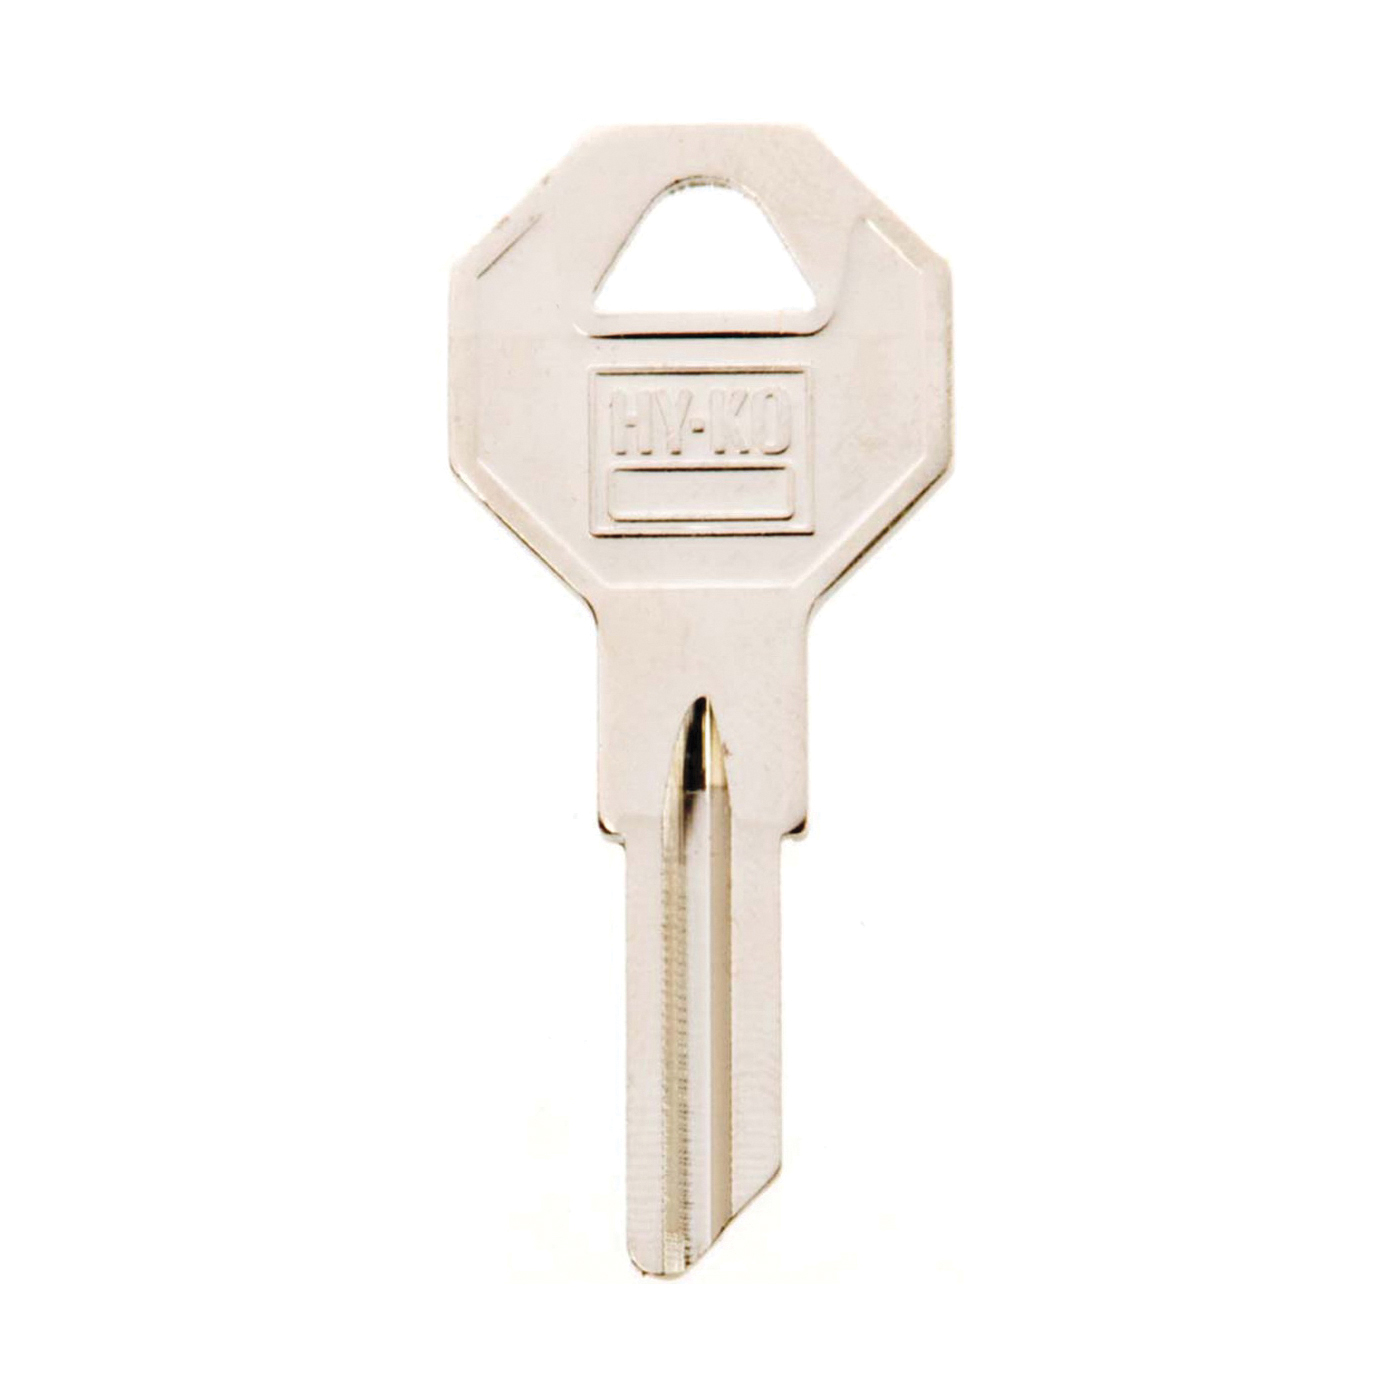 Picture of HY-KO 11010B2 Key Blank, Brass, Nickel, For: Briggs and Stratton Cabinet, House Locks and Padlocks